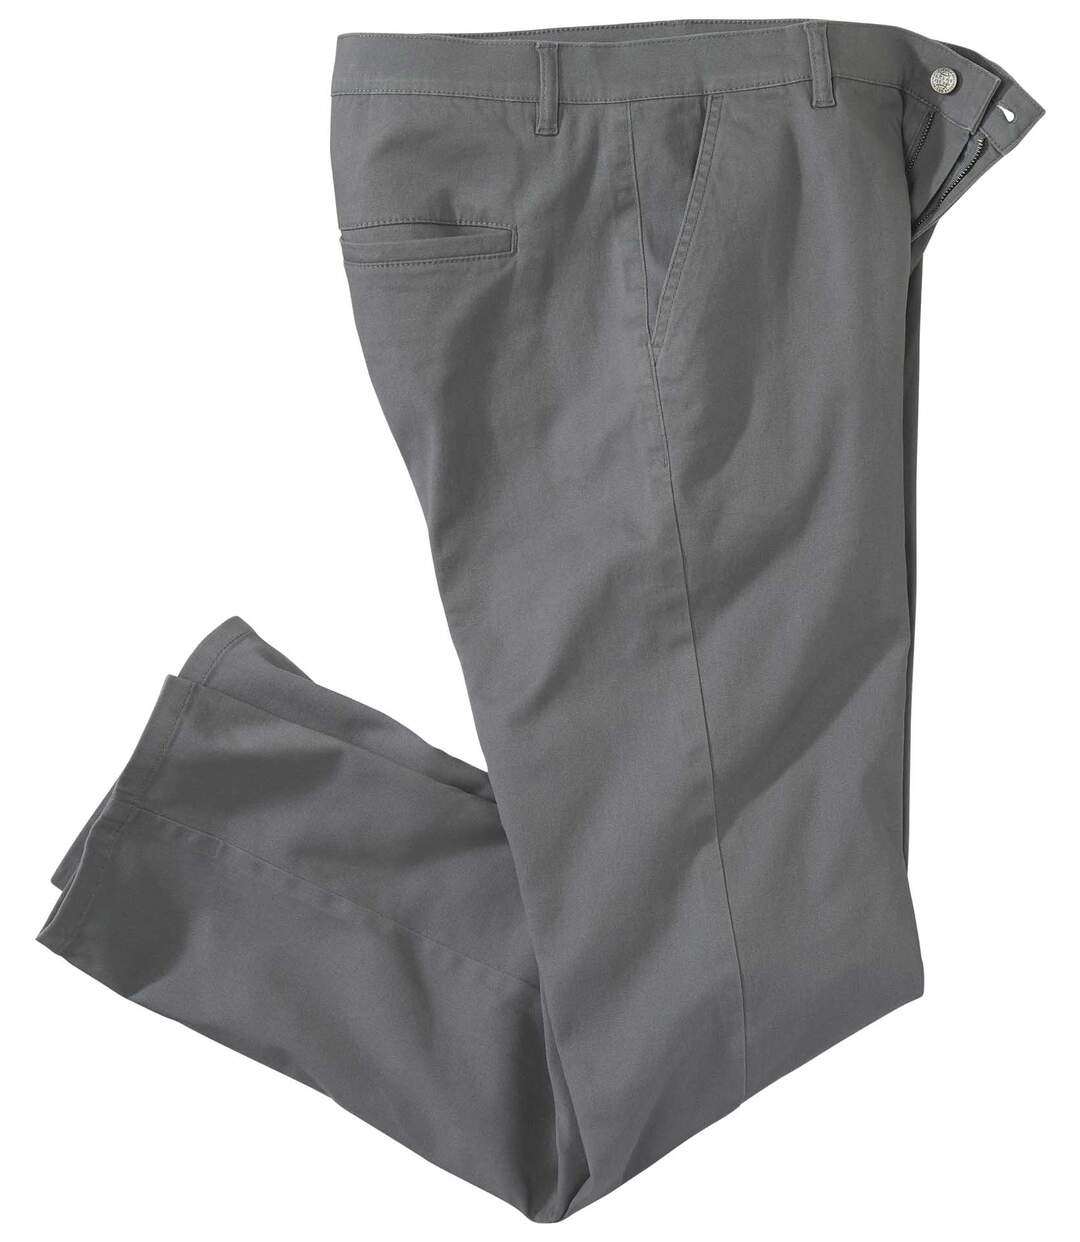 Graue Chino-Hose mit Stretch-Effekt